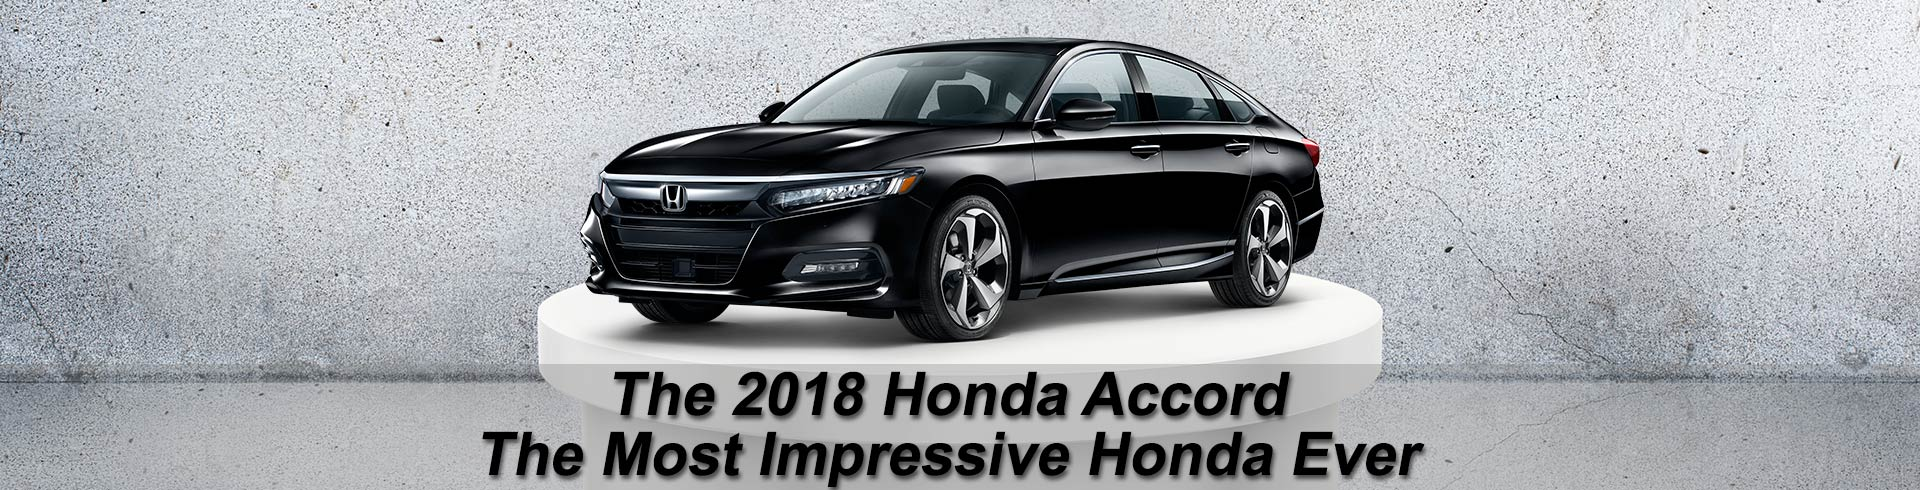 2018-Honda-Accord-marquee.jpg